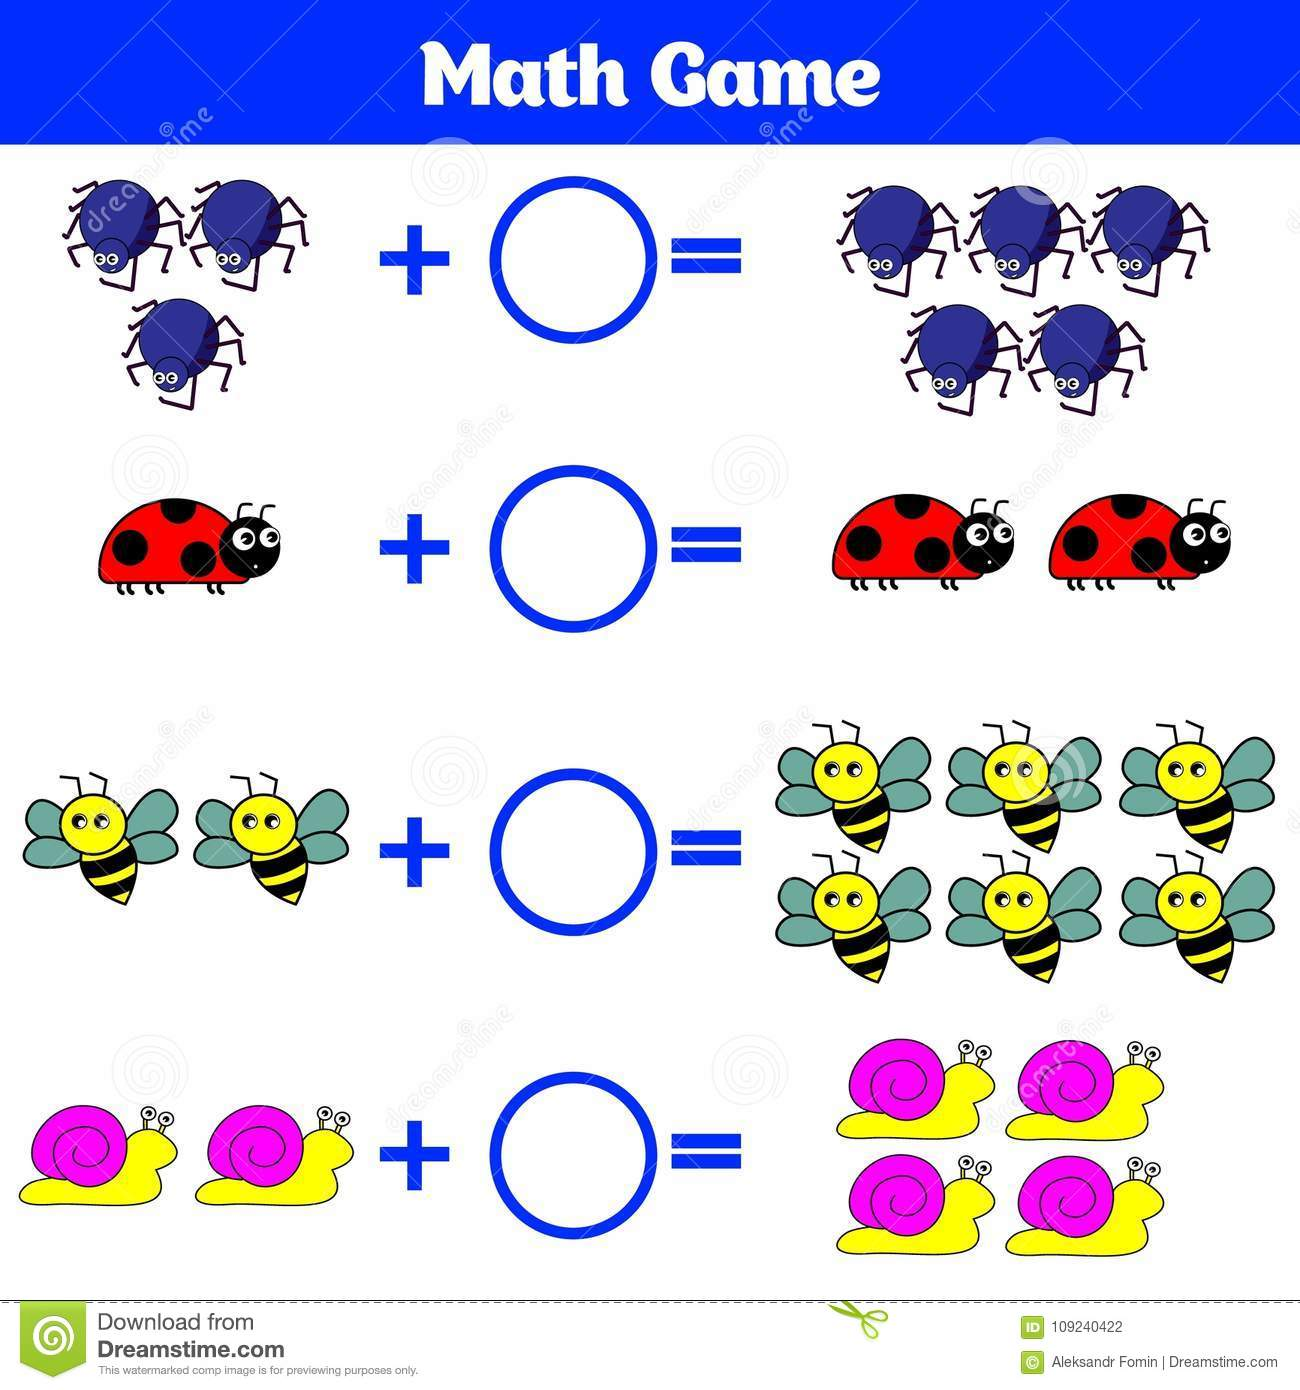 Mathematics Educational Game For Children Learning